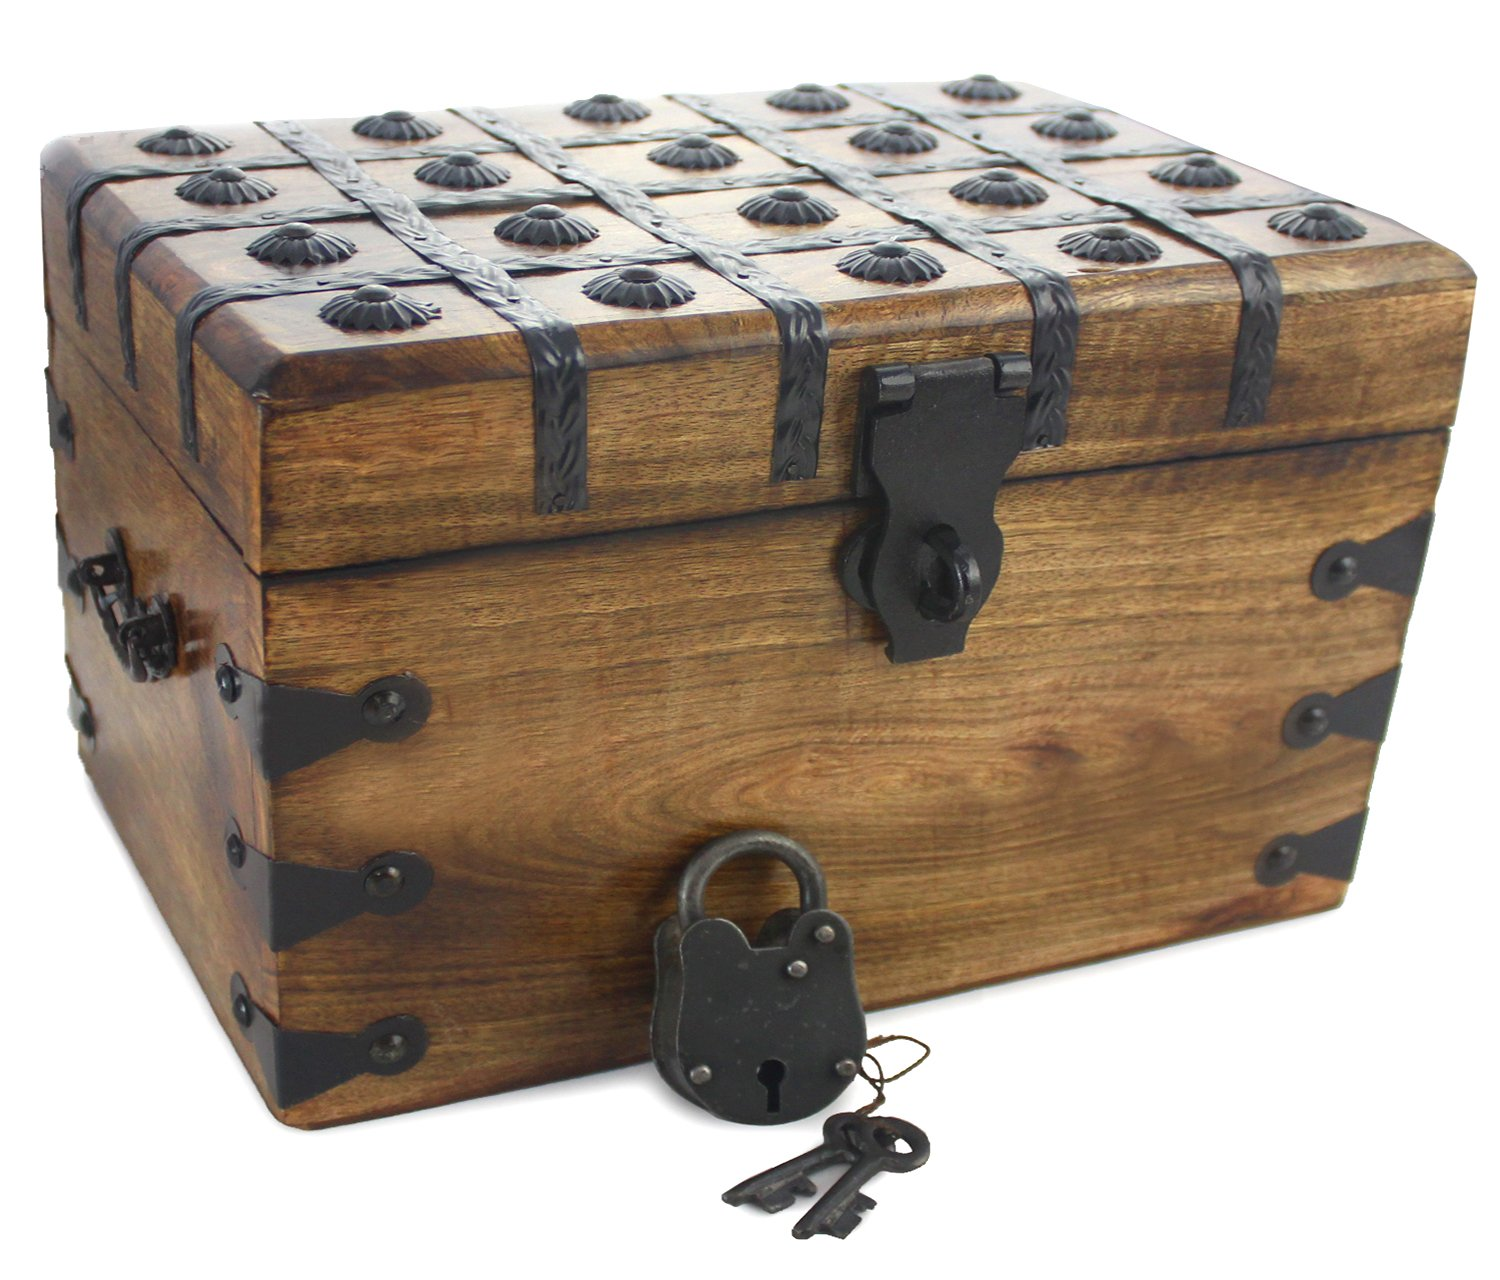 Well Pack Box Large Antique Style Wooden Pirate Treasure Chest 12'' x 8'' x 7'' Strong Box With Authentic Iron Master Lock And Skeleton Key